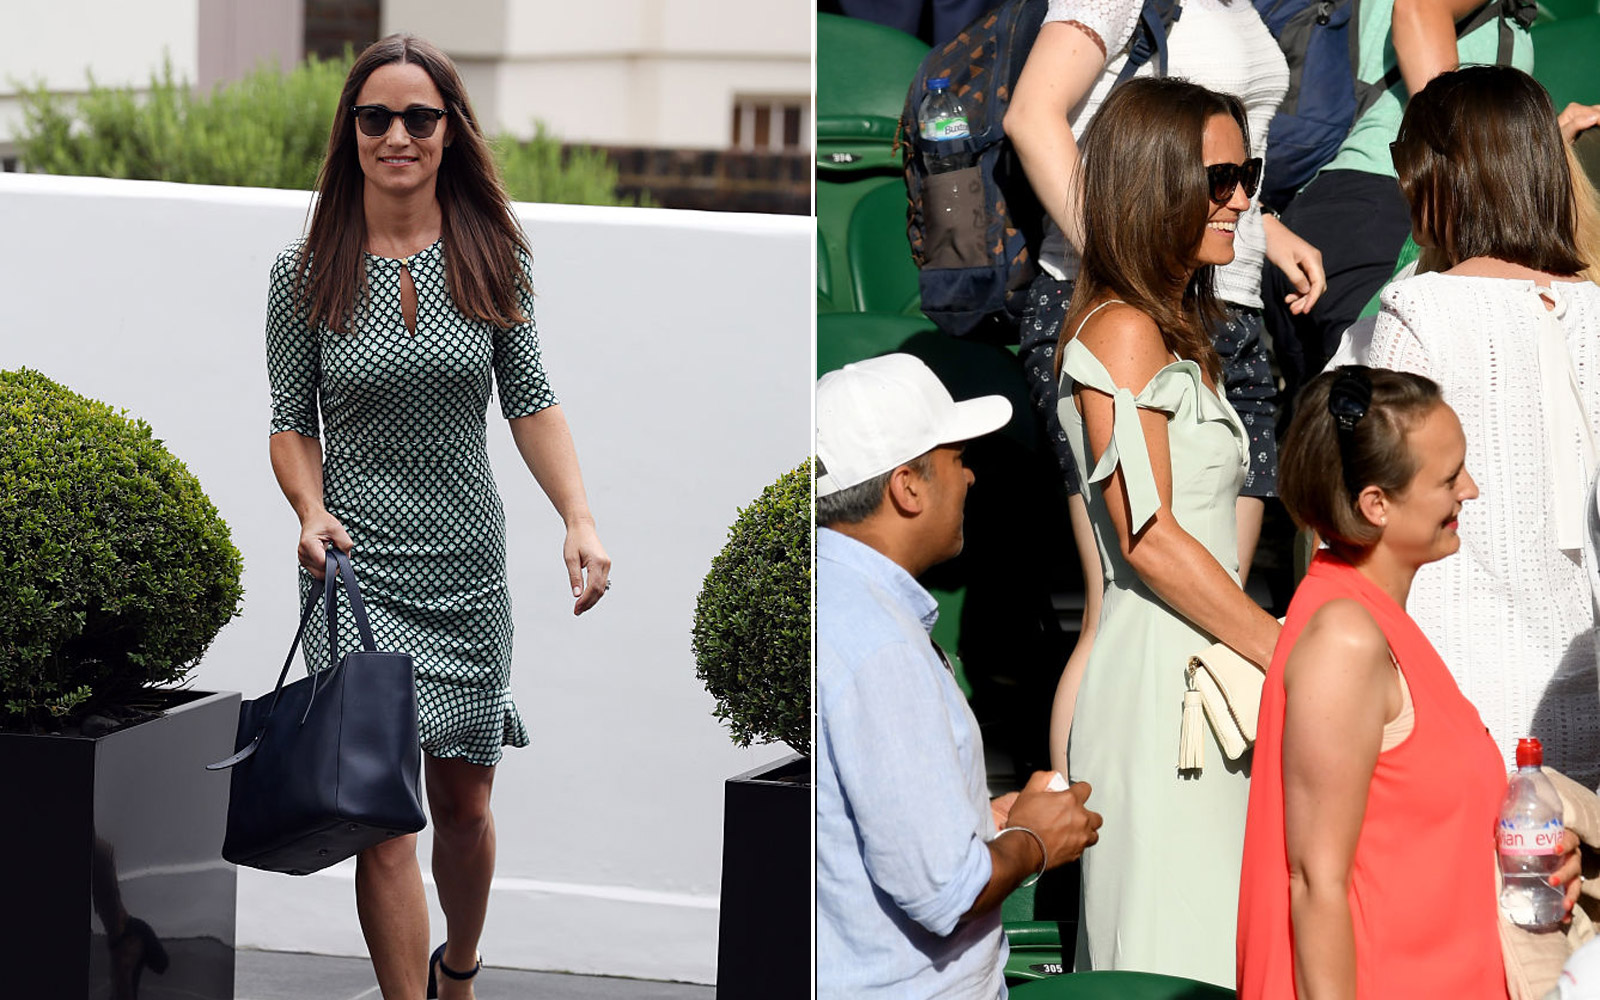 Spliced photo of Pippa leaving her home and Pippa at Wimbledon